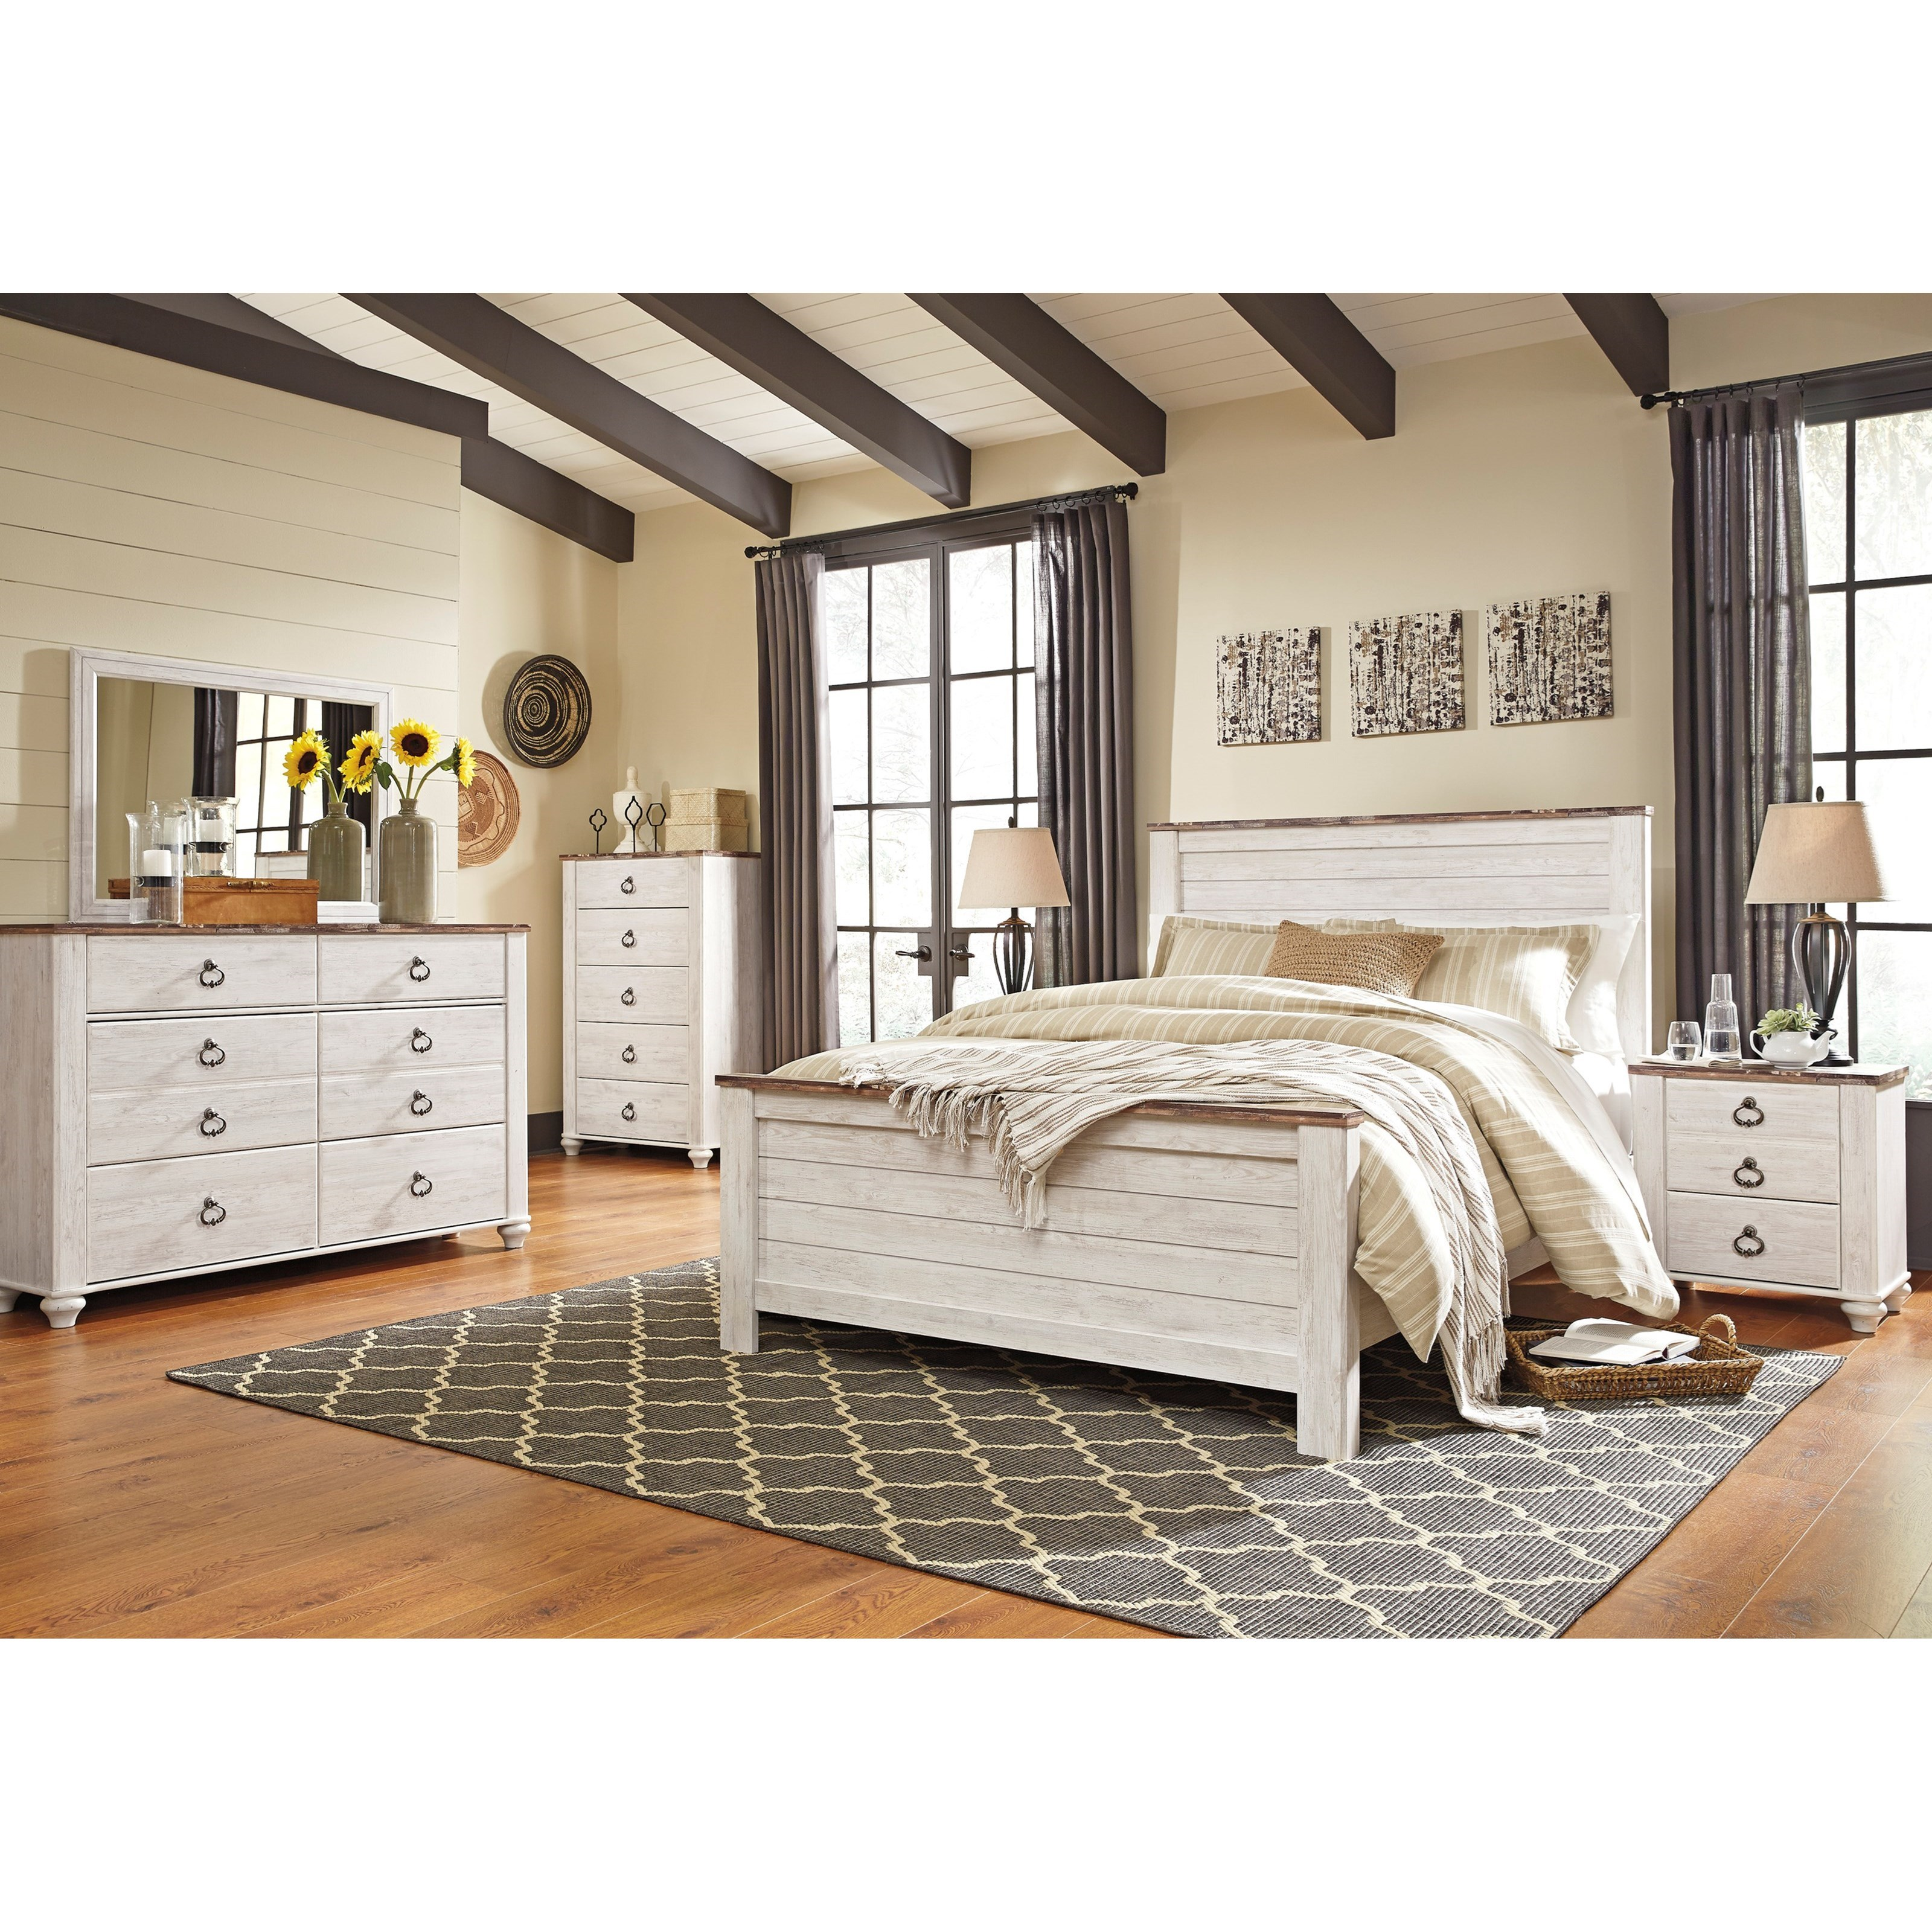 Signature design by ashley willowton queen bedroom group for Bedroom groups